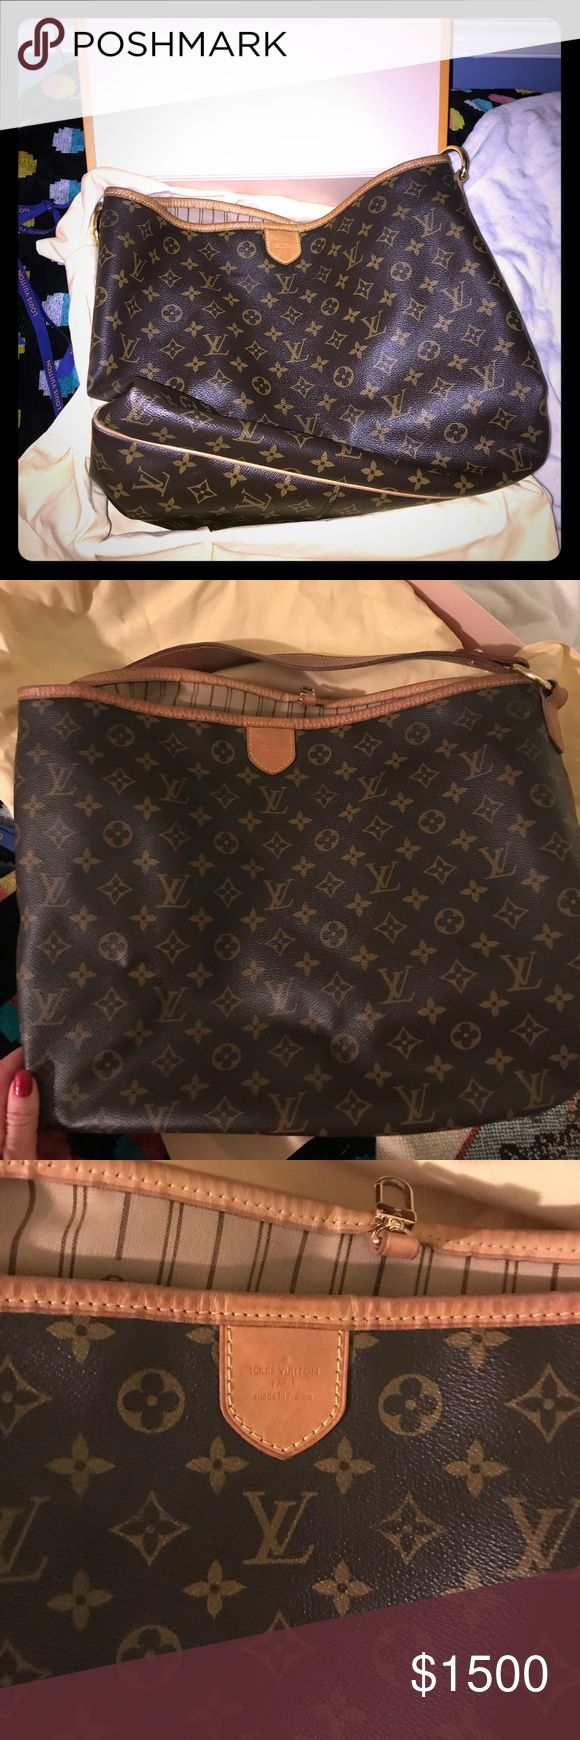 Louis Vuitton Delightful GM Bag Authentic Gently used Delightful GM Bag. Comes with box and bag. Price firm. Flaws shown in pictures. One little nick on leather which you can not see really at all, super tiny. One little mark on handle. Louis Vuitton Bags Totes